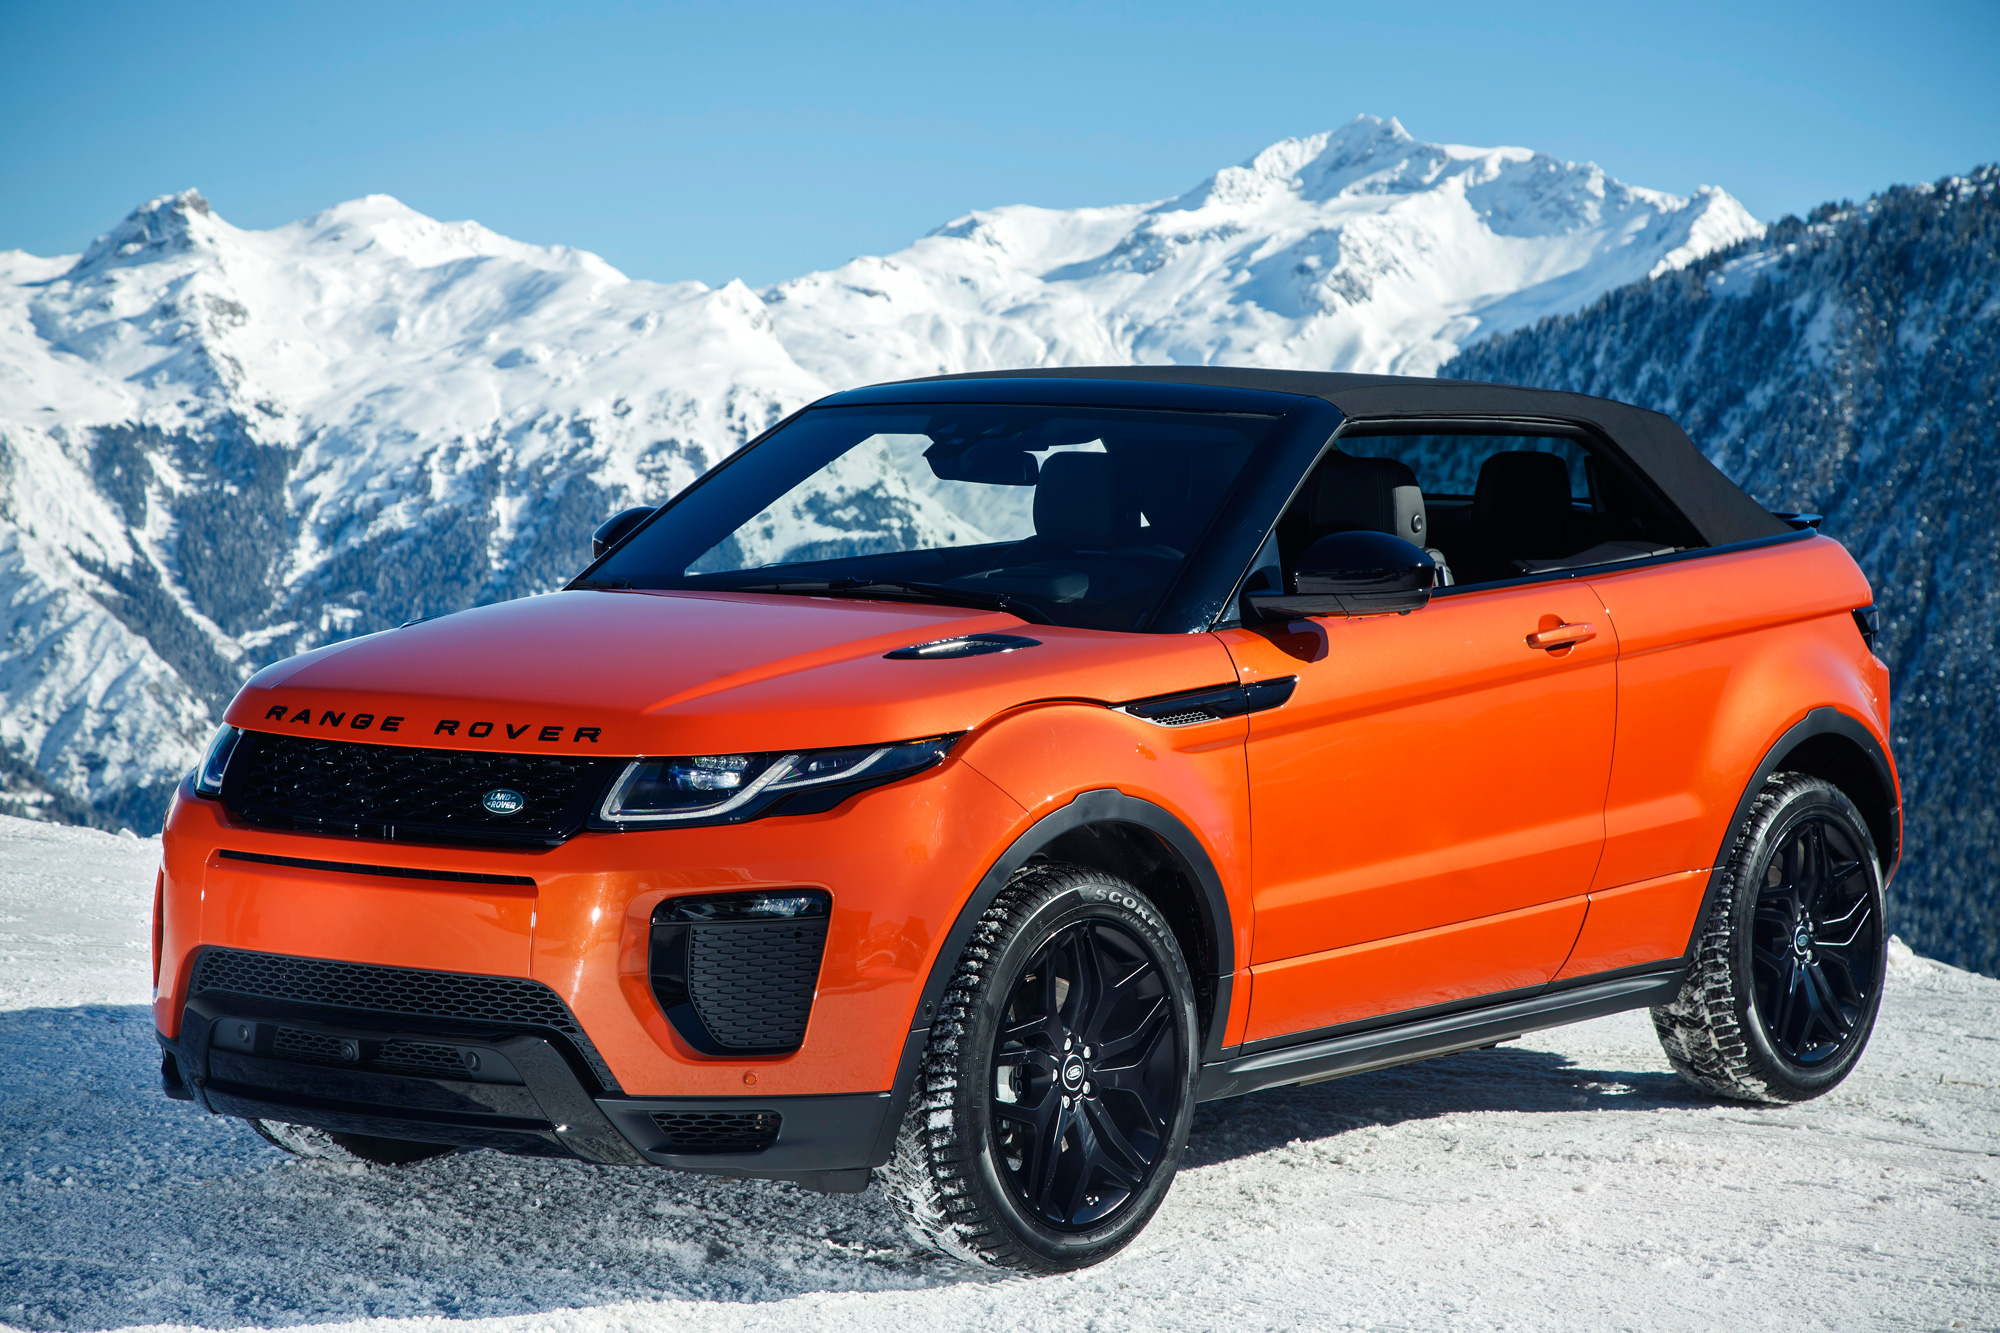 With the original Evoque already so easy on the eyes, it's hard not to get excited by this stylish off-roader that can now double up as a convertible.